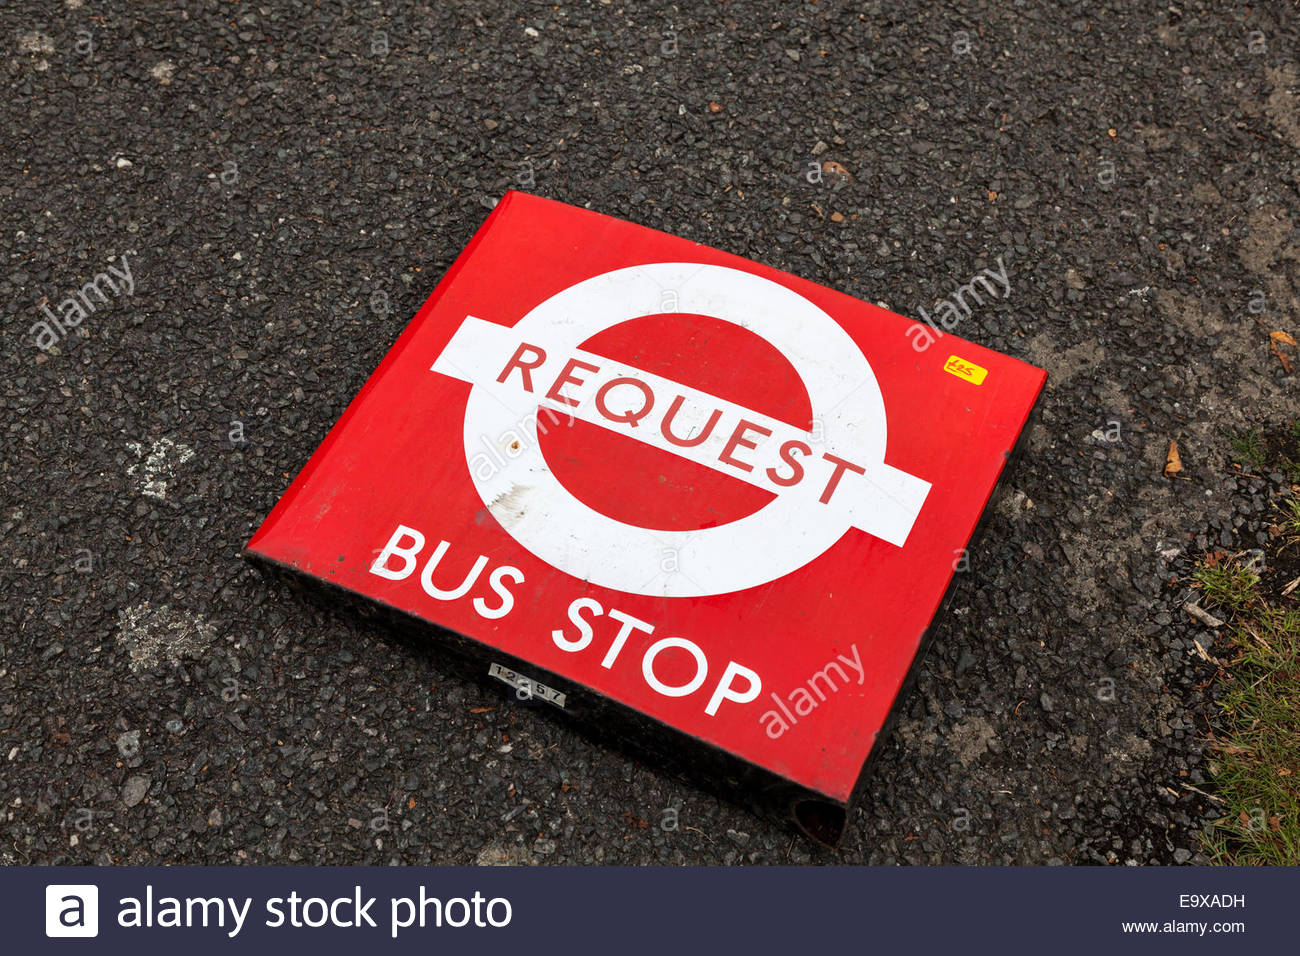 London Transport - Request bus stop sign - Stock Image